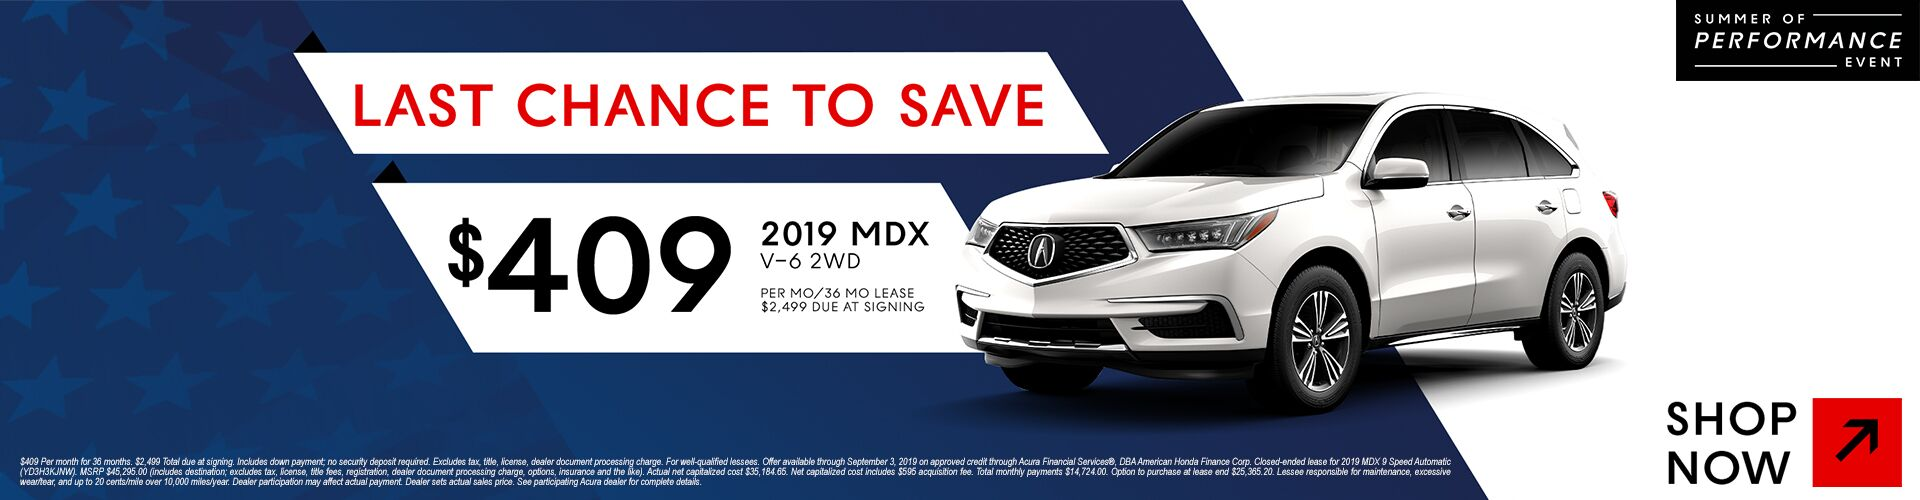 _1920x500_2019 MDX_CA_2WD_19125_Acura_LaborDay_CTROT01